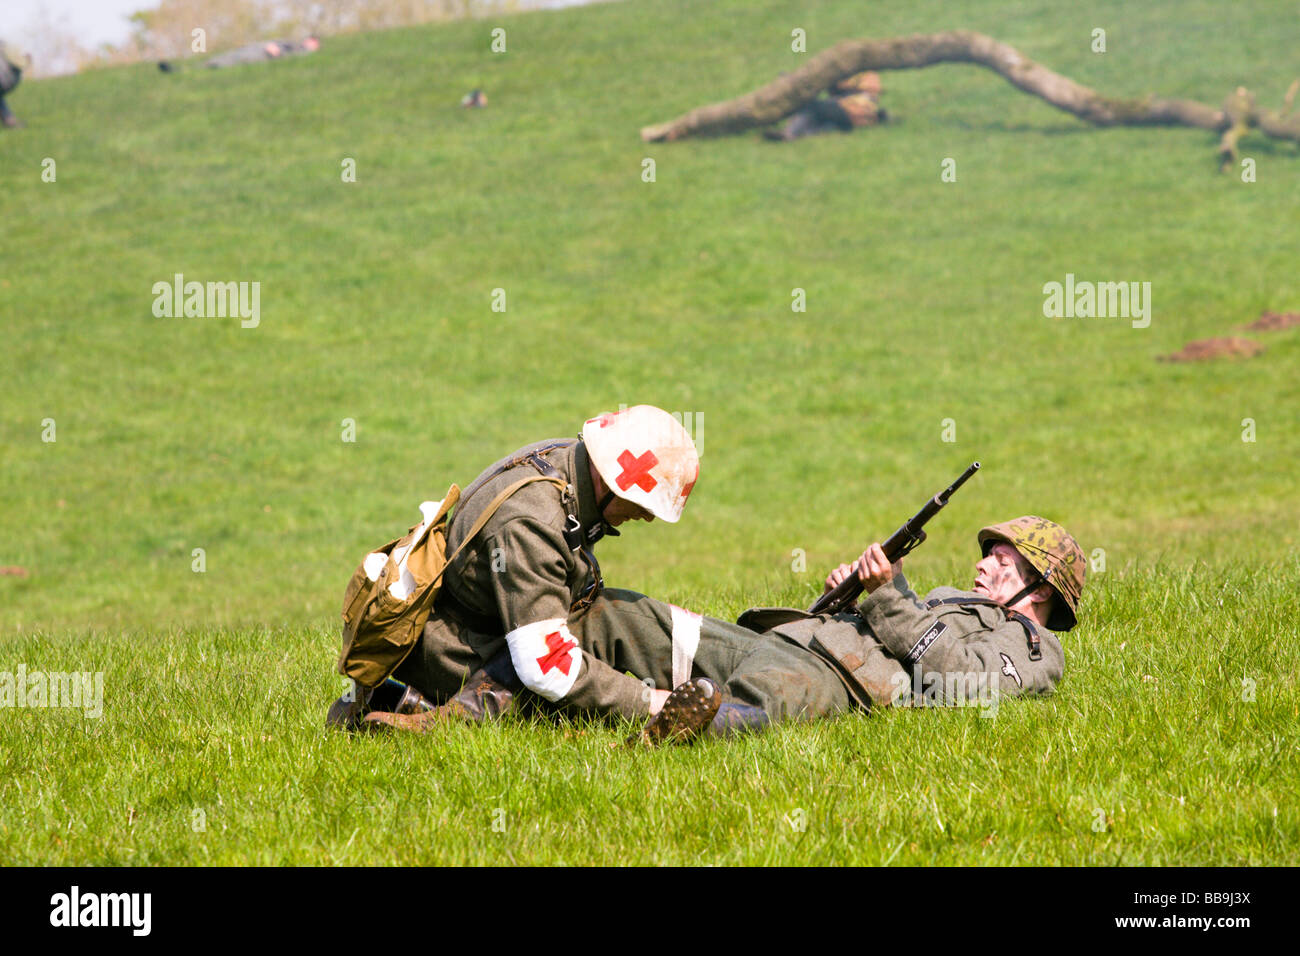 German army medic treats wounded soldier. GI's on Parade Moneymore, Londonderry, Northern Ireland - Stock Image